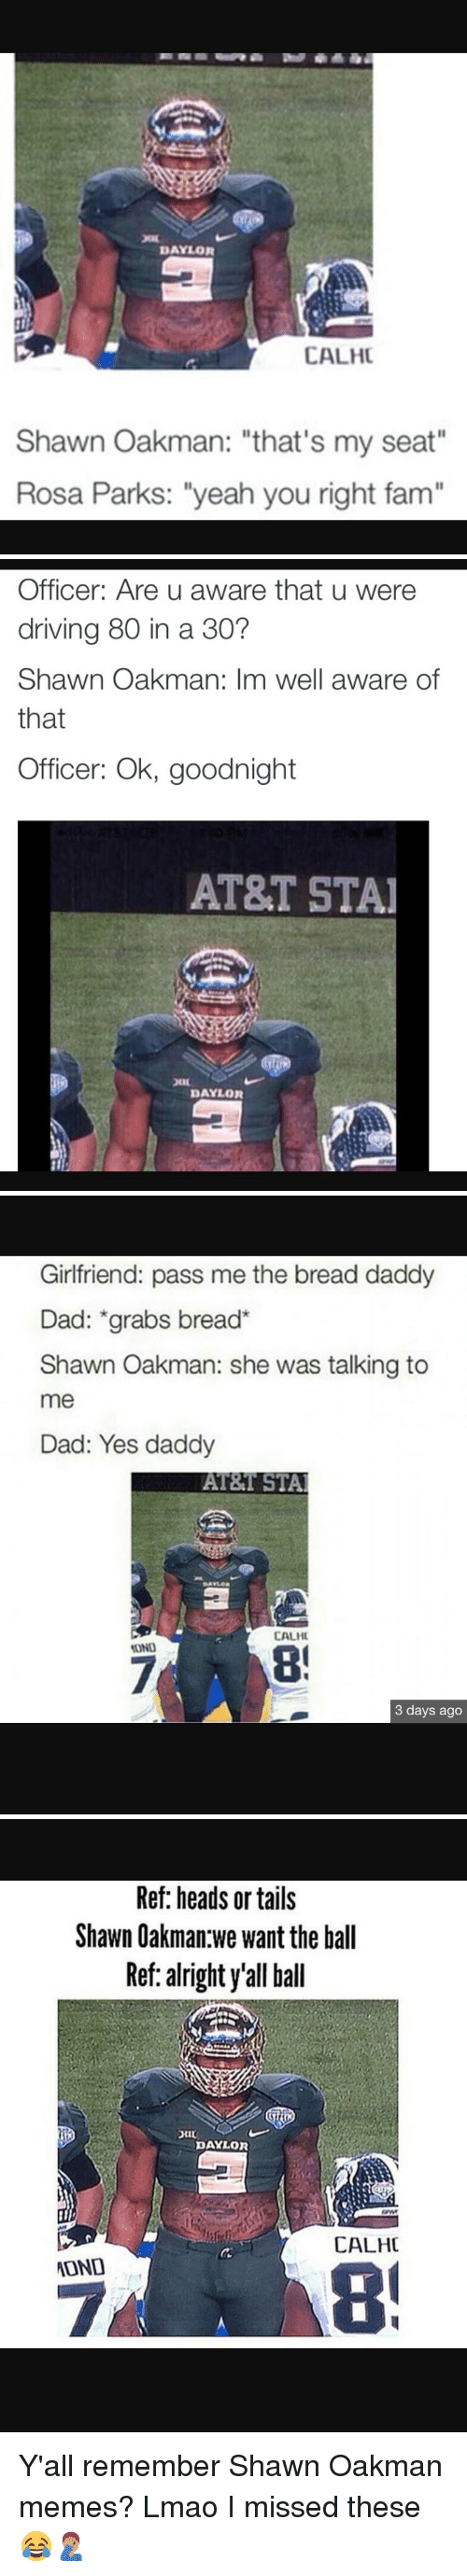 """Shawn Oakman: DAYLOR  CALHC  Shawn Oakman: """"that's my seat""""  Rosa Parks: """"yeah you right fam""""   Officer: Are u aware that u were  driving 80 in a 30?  Shawn Oakman: Im well aware of  that  Officer: Ok, goodnight  AT&T STAI  DAYLOR   Girlfriend: pass me the bread daddy  Dad: grabs bread  Shawn Oakman: she was talking to  me  Dad: Yes daddy  AT&T STAI  CALHI  OND  3 days ago   Ref: heads or tails  Shawn Oakman we want the ball  Ref: alright y'all ball  DAYLOR  CALHC  ADNO Y'all remember Shawn Oakman memes? Lmao I missed these😂🤦🏽♂️"""